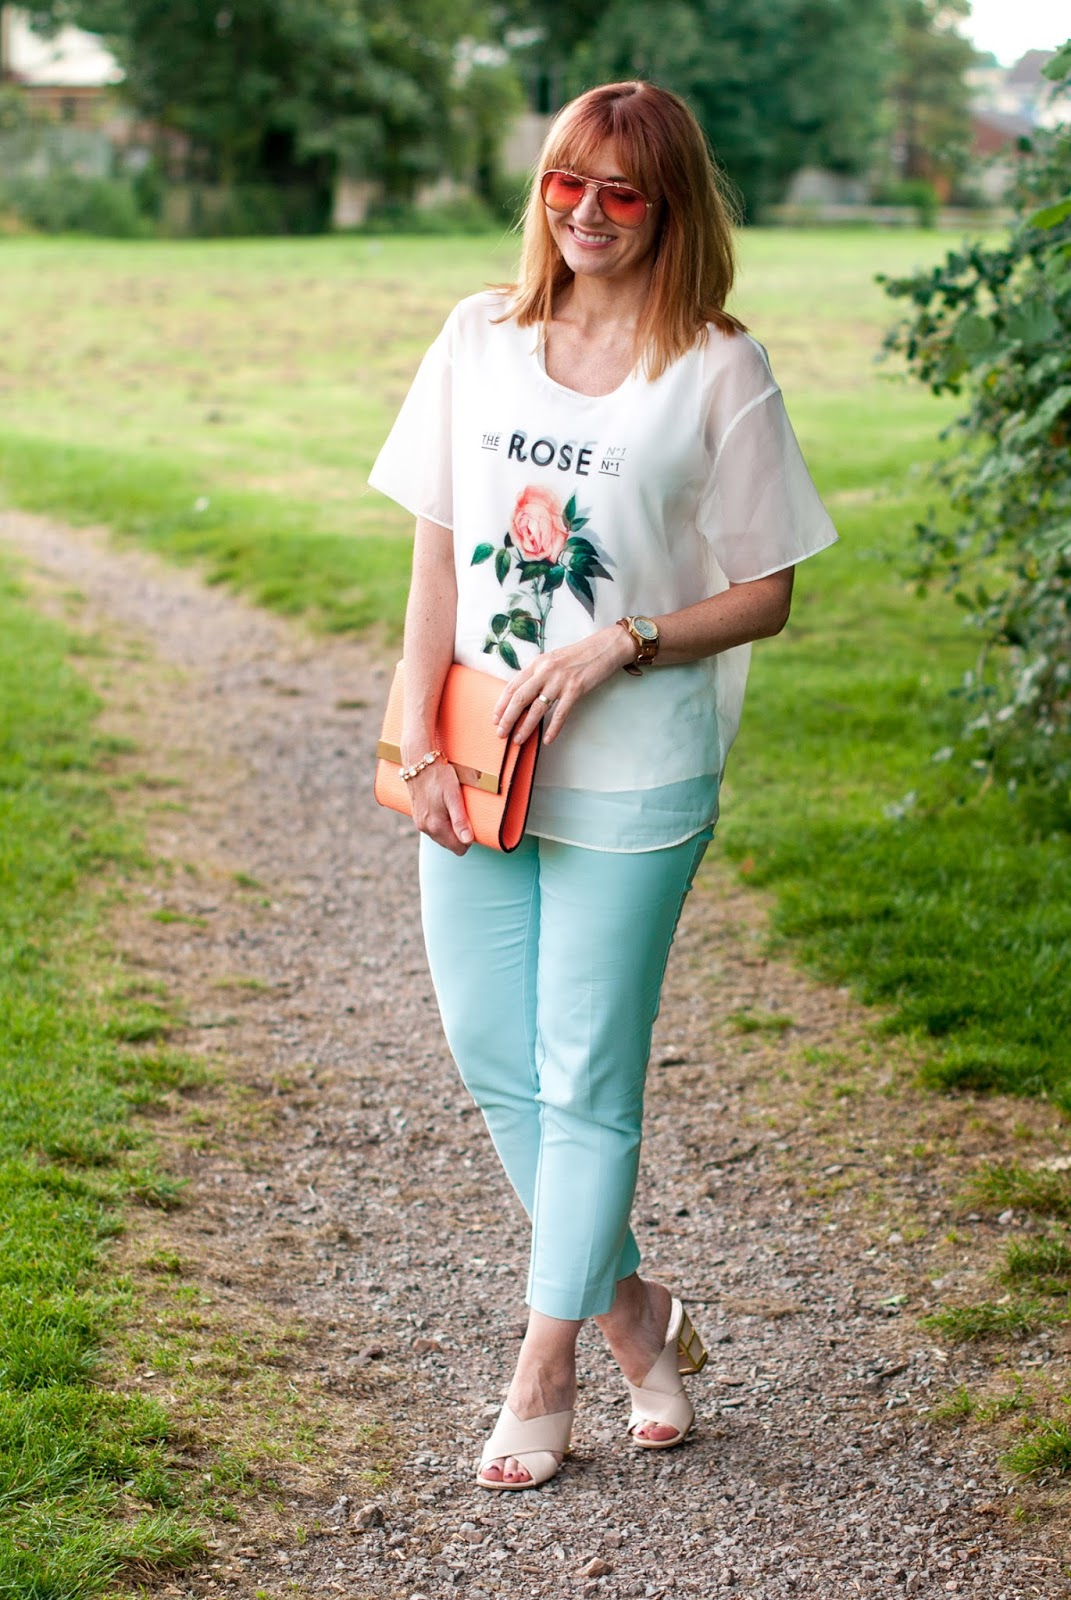 Soft whites and pastels summer outfit: Rose print sheer layered top mint trousers chinos pants nude crossover mules orange tinted aviators coral clutch | Not Dressed As Lamb, over 40 style